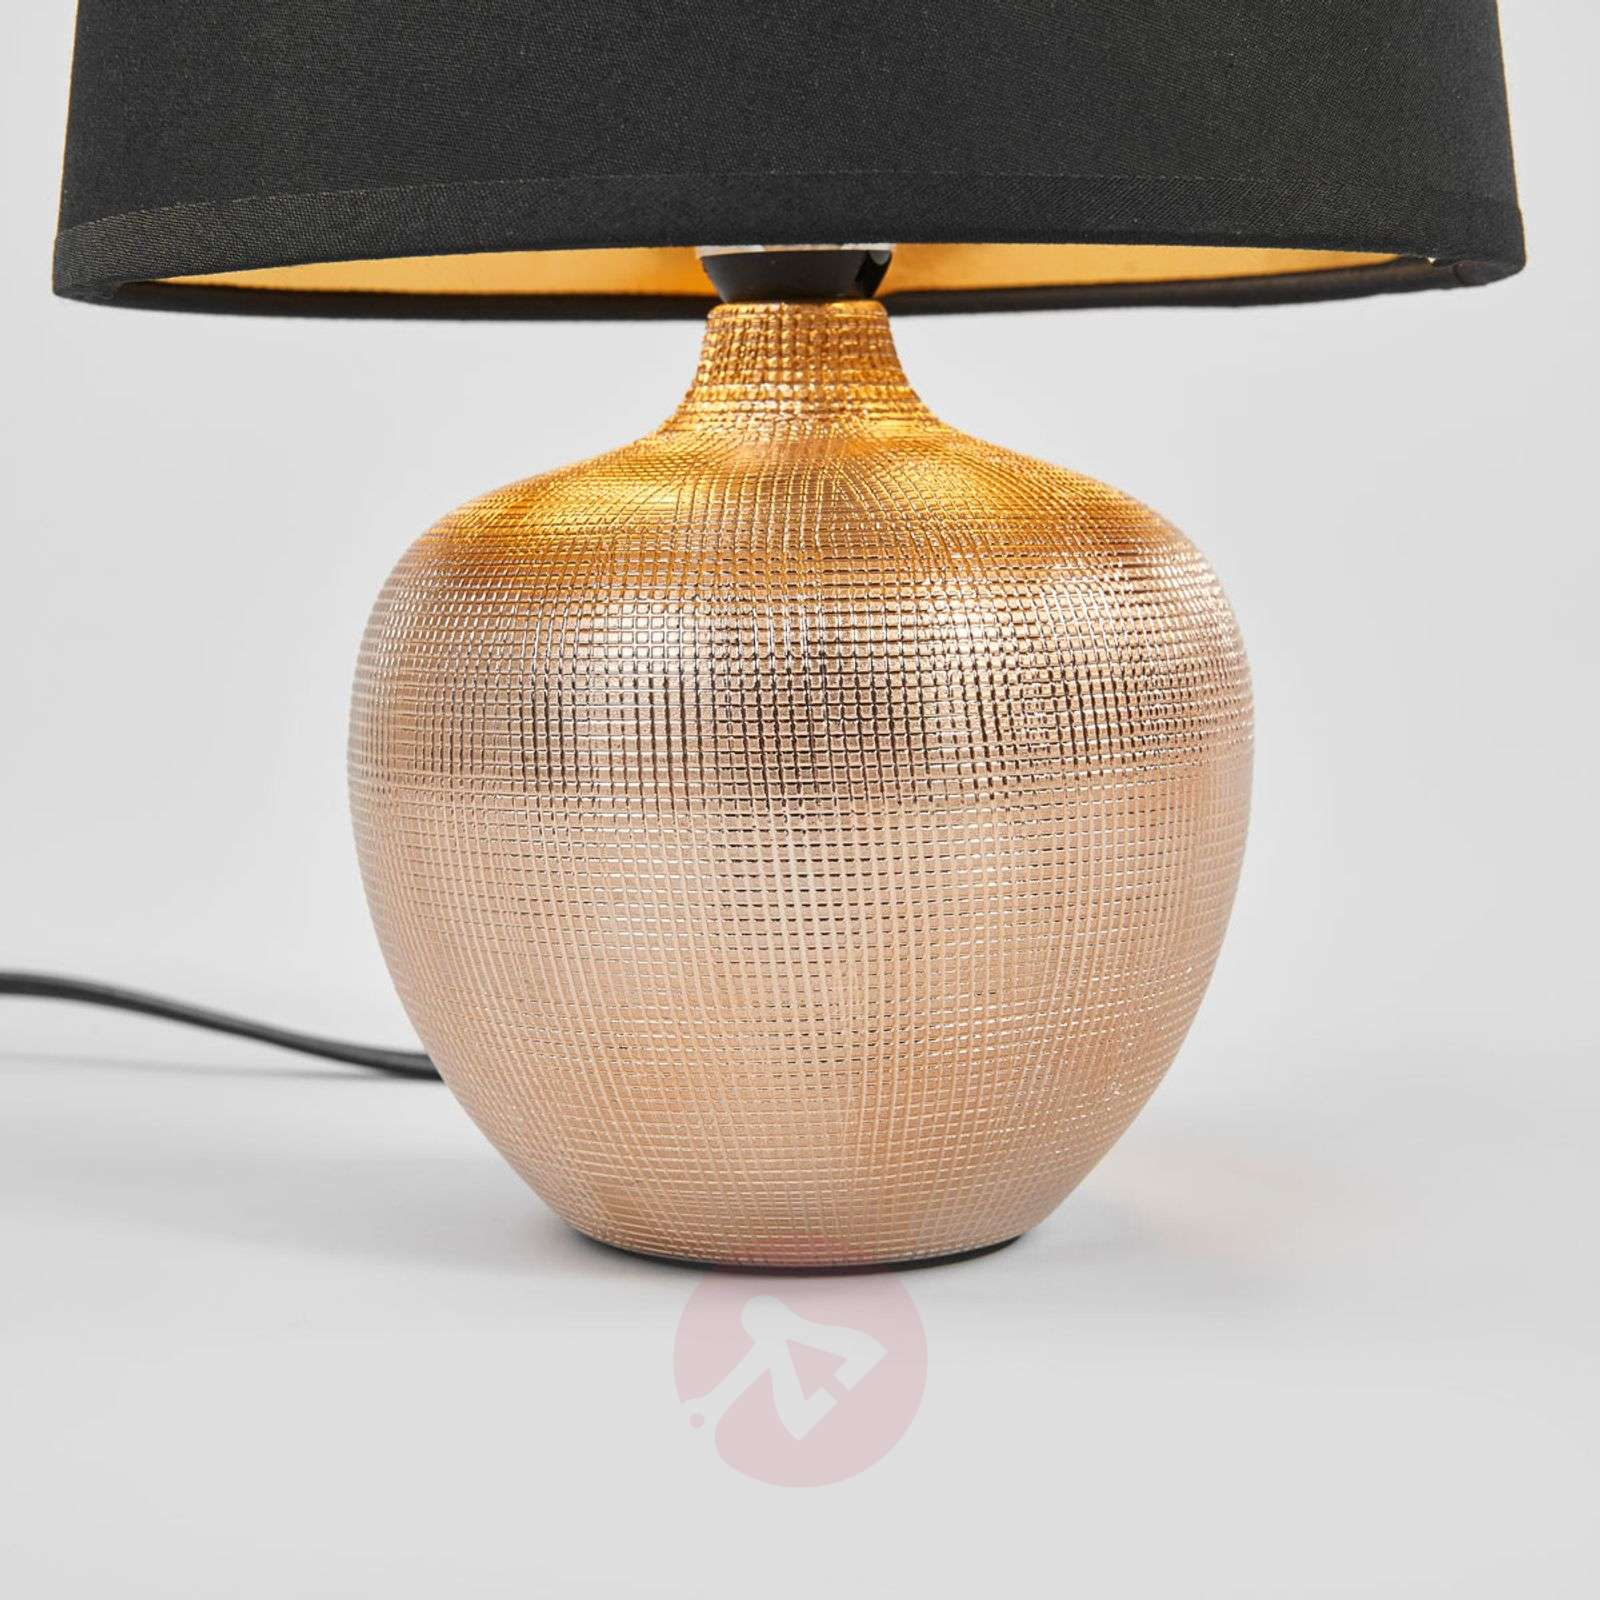 Black gold Thorina table lamp-8032095-02